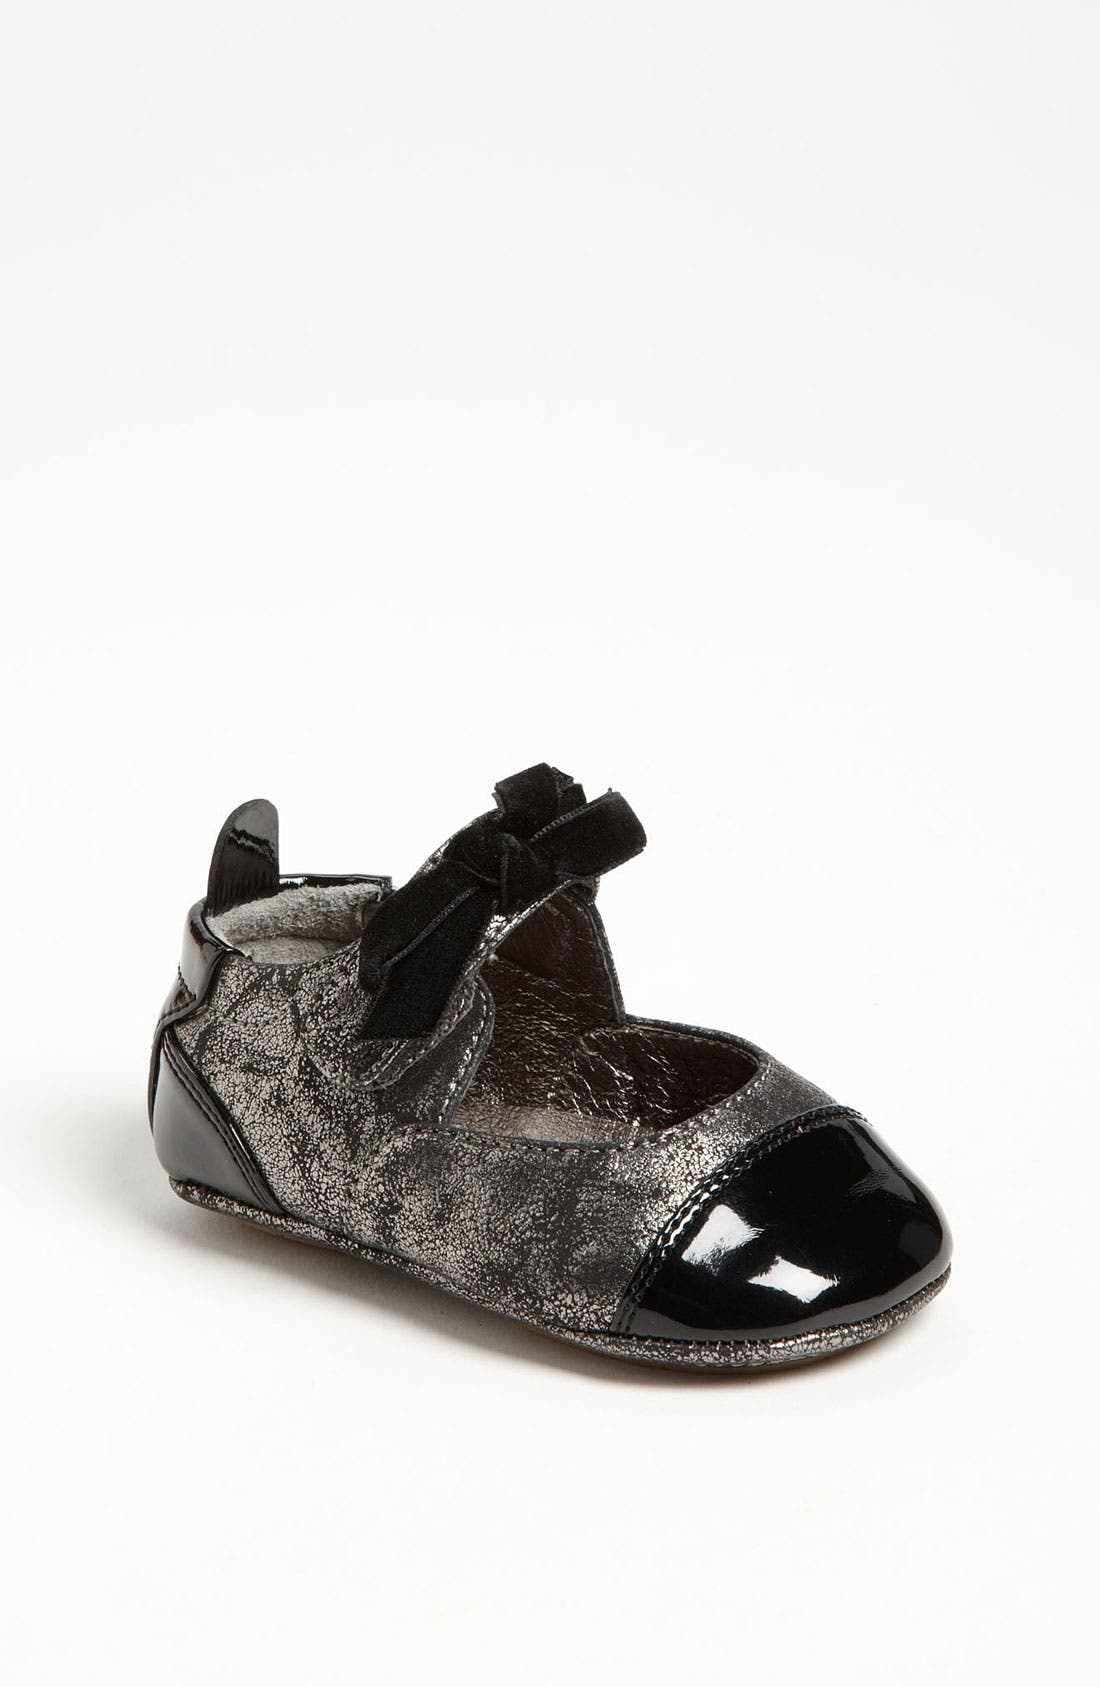 Alternate Image 1 Selected - Cole Haan 'Mini Cap Toe' Leather Crib Shoe (Baby)